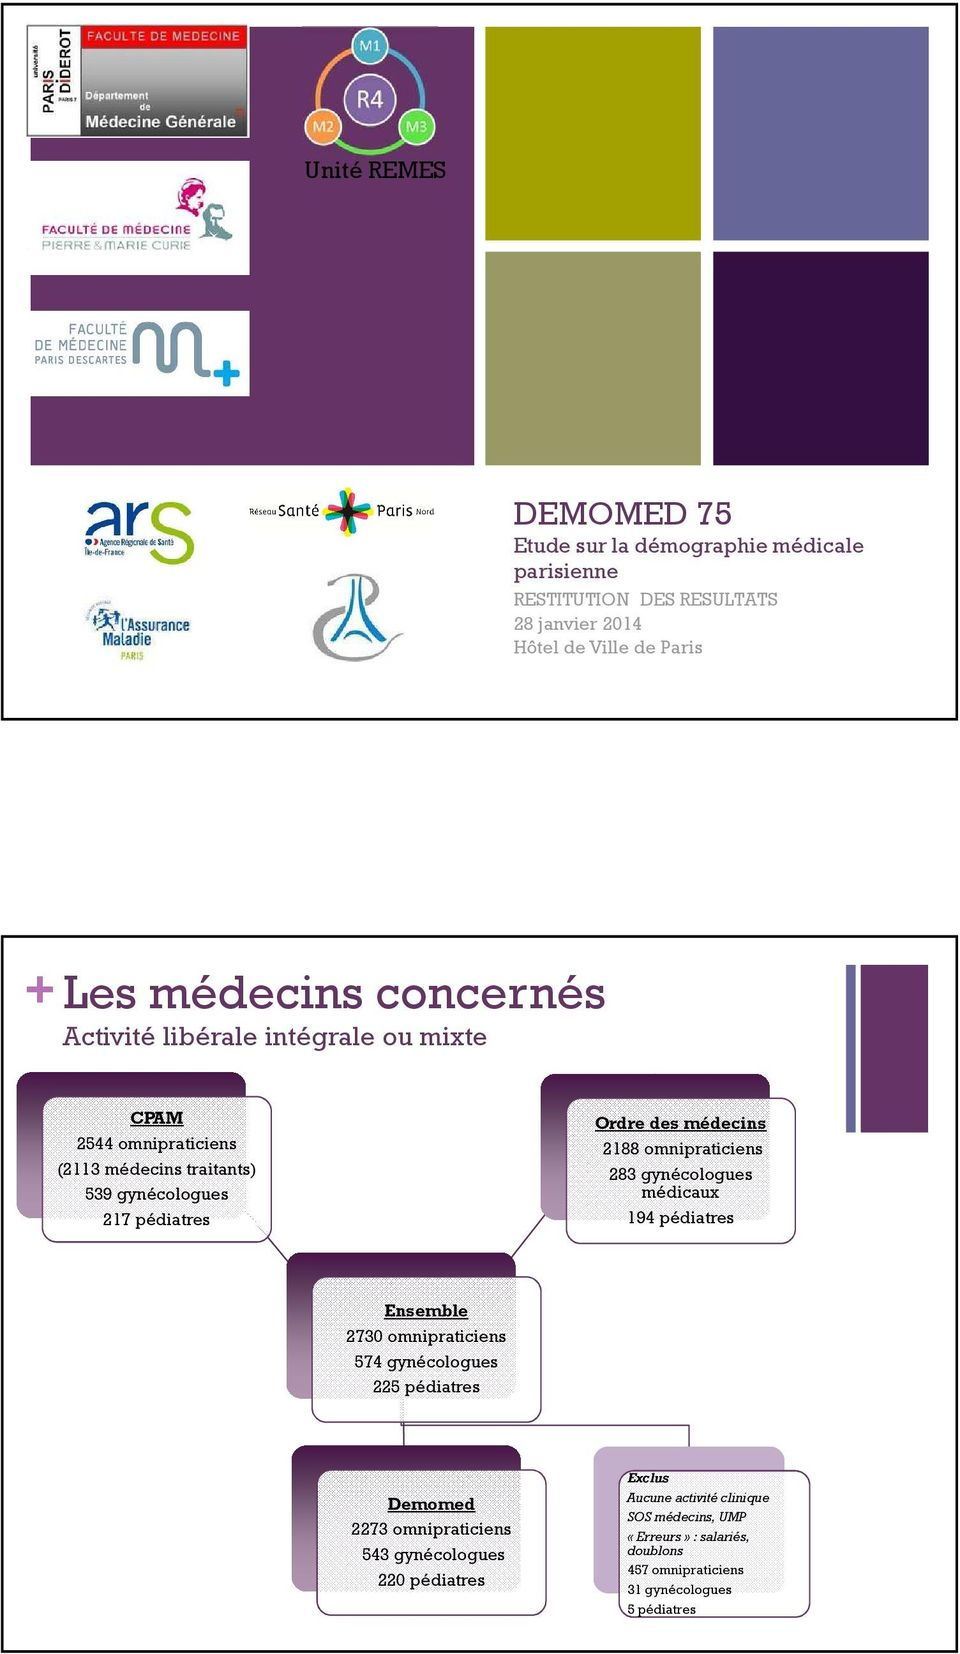 2188 omnipraticiens 283 gynécologues médicaux 194 pédiatres Ensemble 2730 omnipraticiens 574 gynécologues 225 pédiatres Demomed 2273 omnipraticiens 543